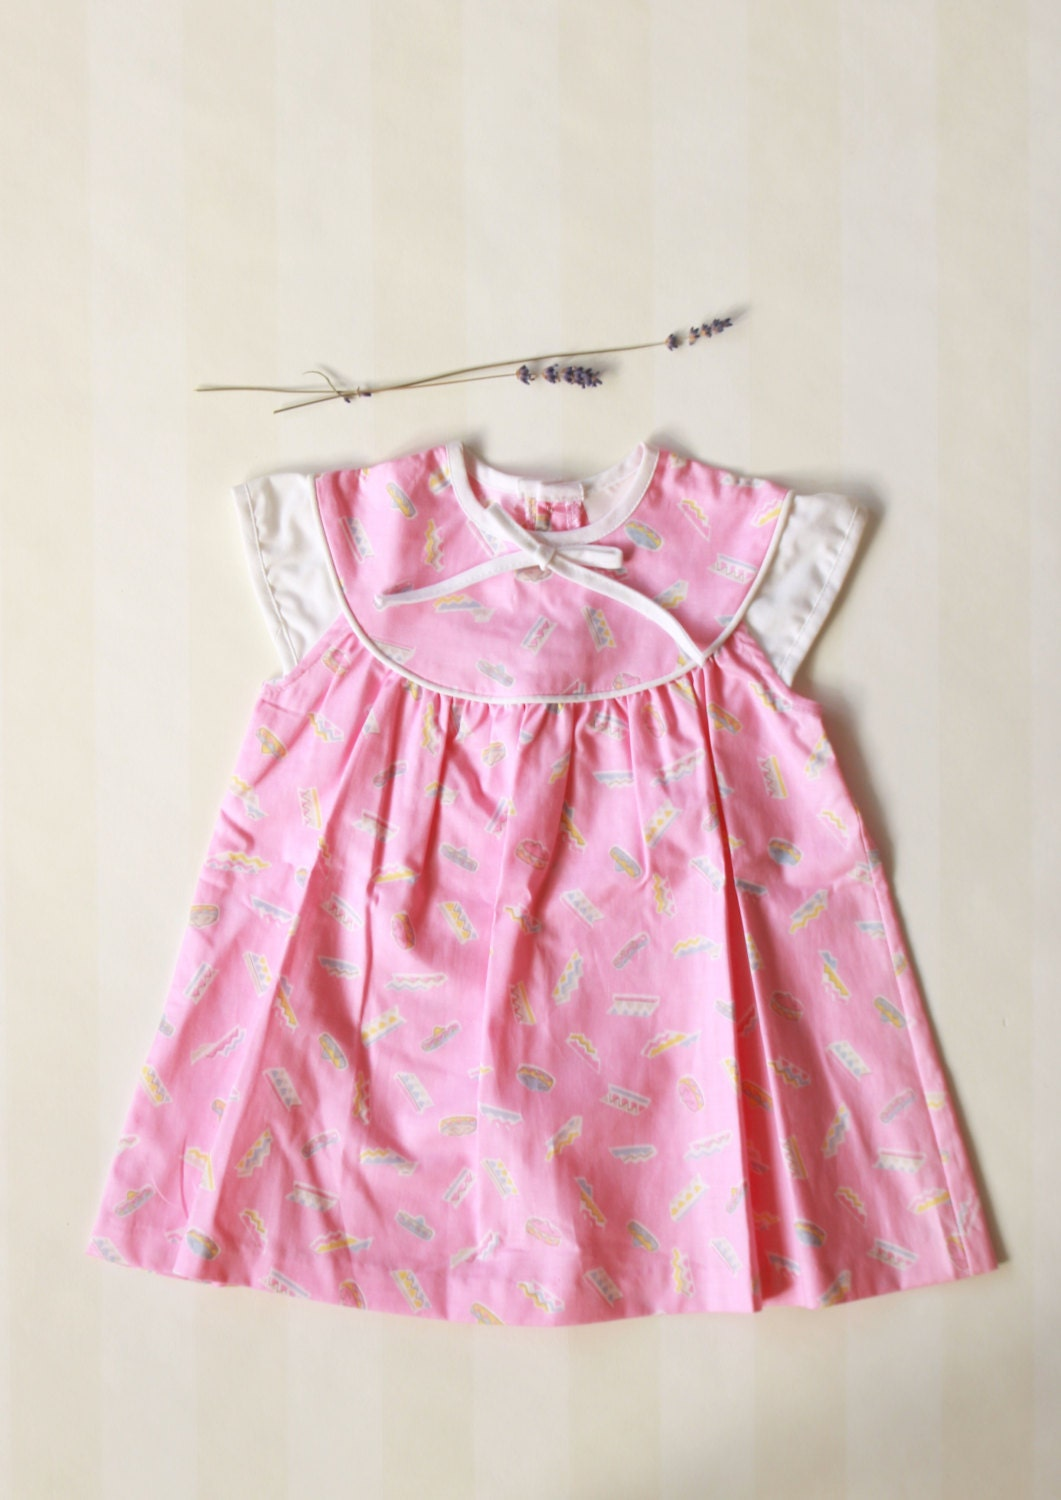 Vintage Baby Clothes Baby Girl Dress in Pink & White With a